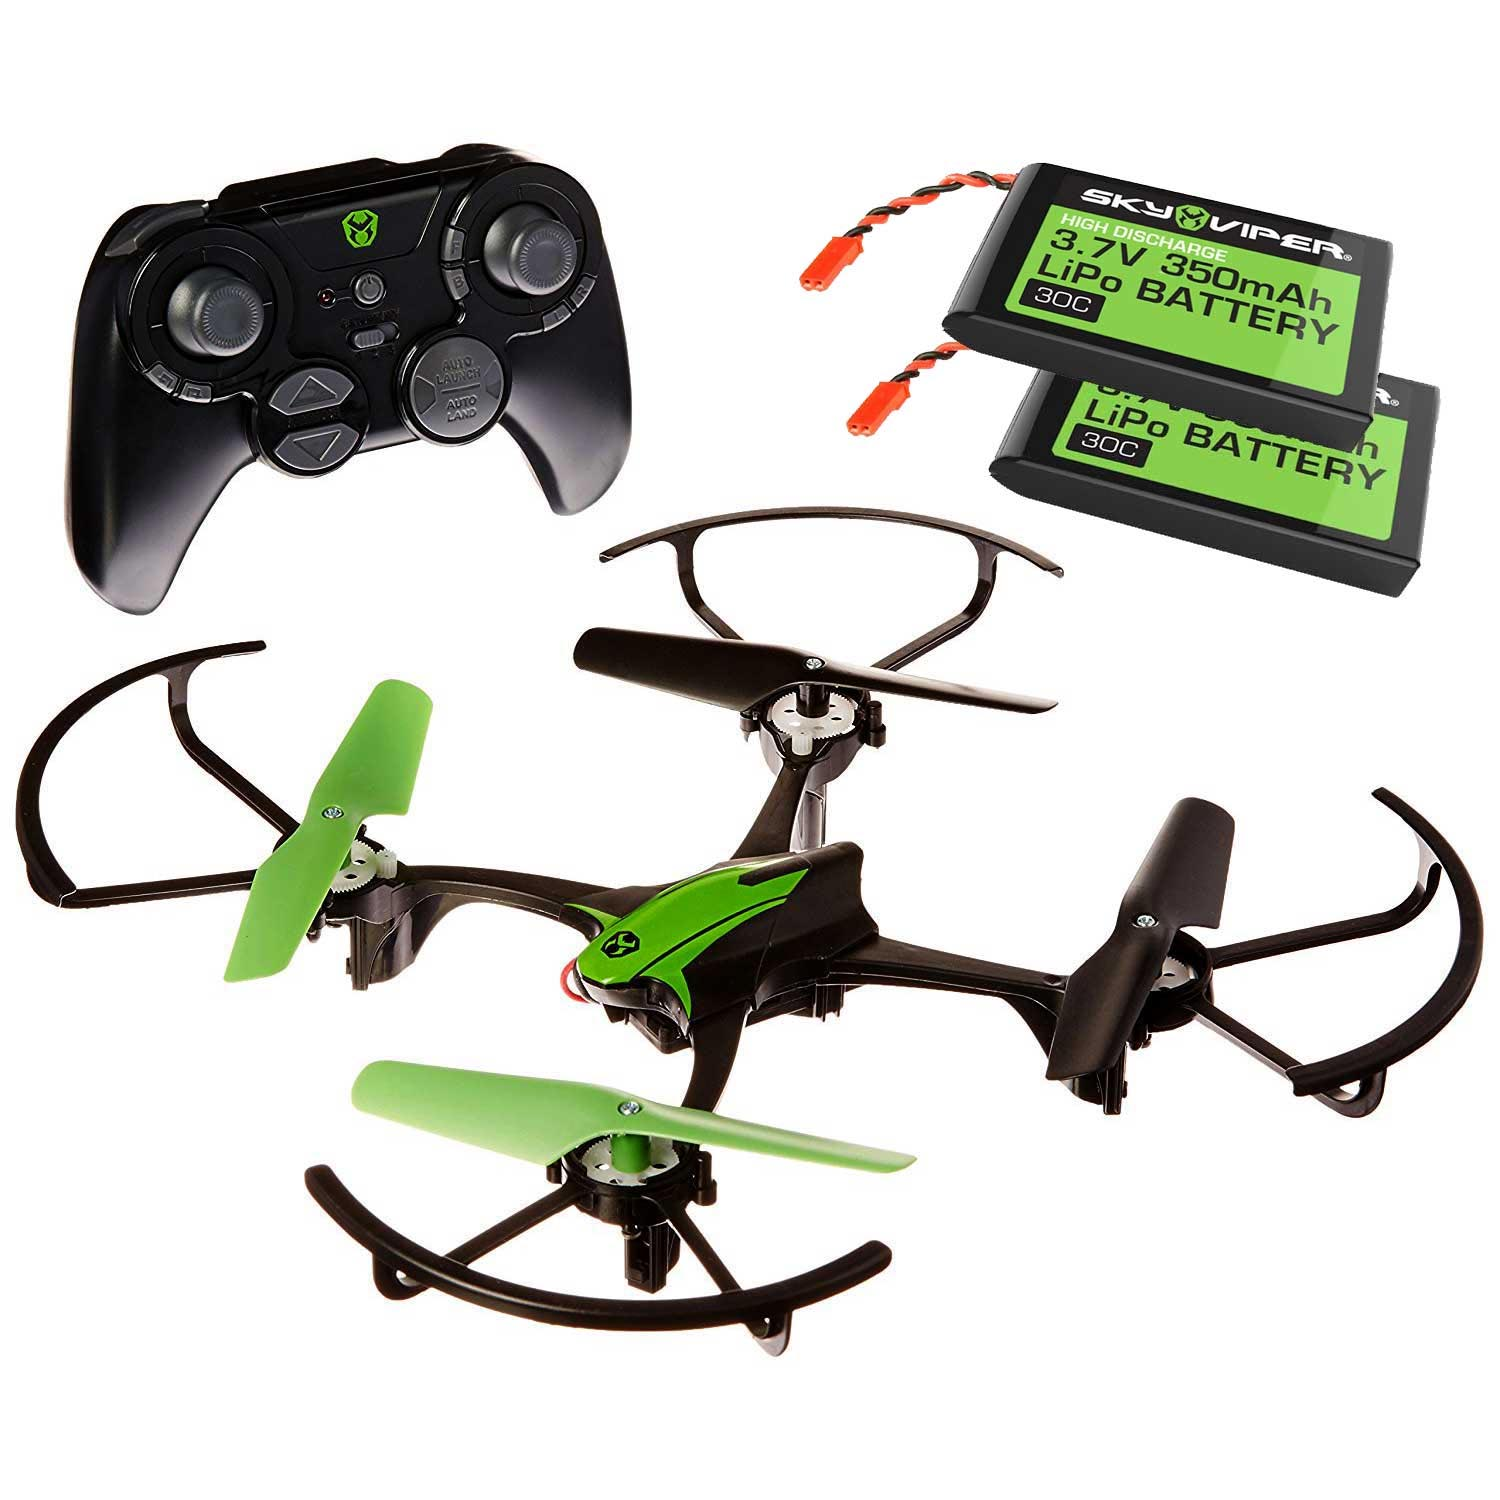 Sky Viper s1700 High Flying 8 Stunts Flight Assist Controlled Drone w Batteries by SKYROCKET TOYS